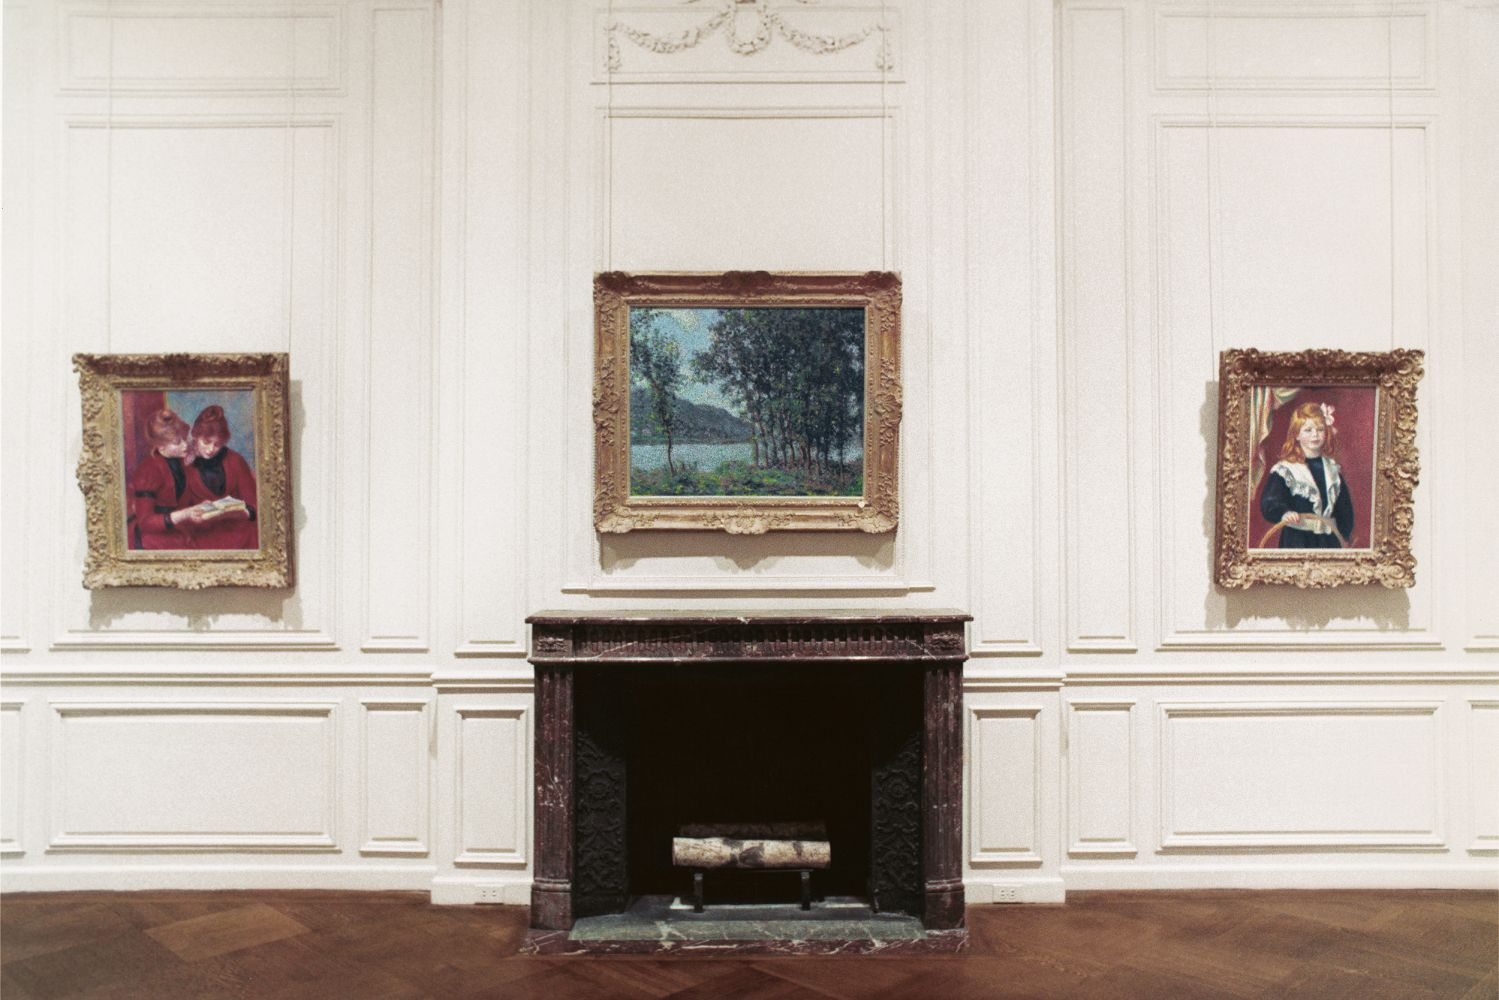 Four masters of Impressionism